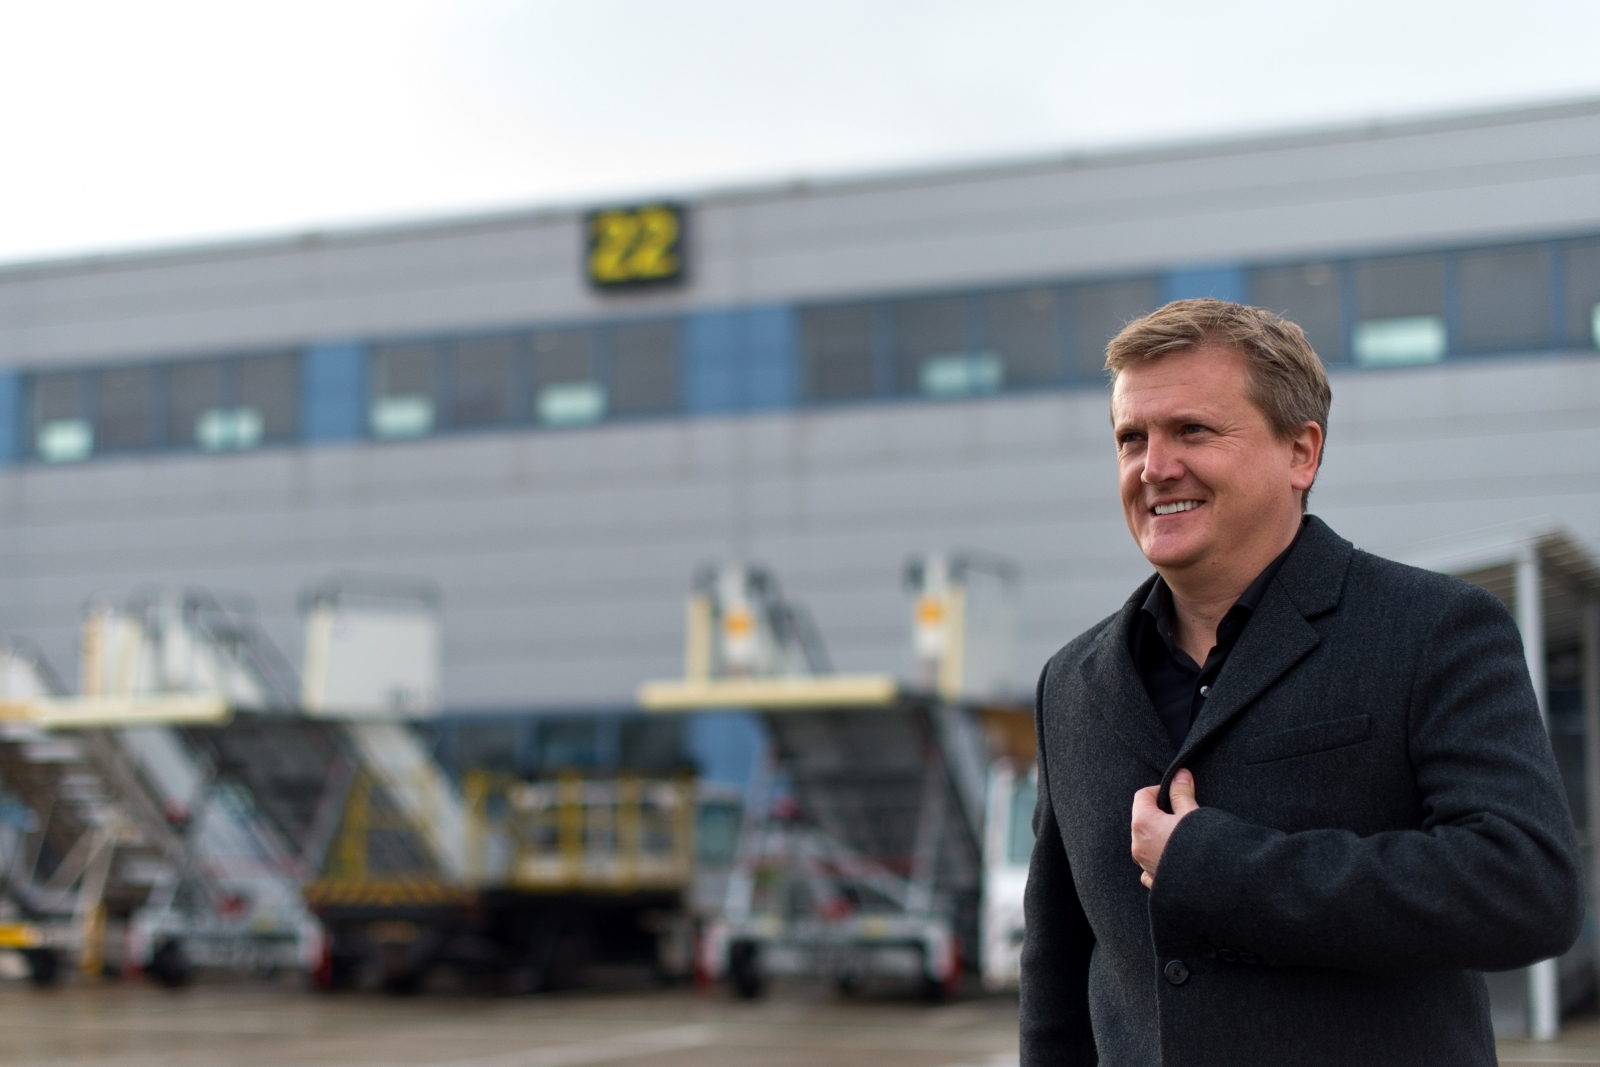 Aled Jones axed by BBC following claims of inappropriate behaviour